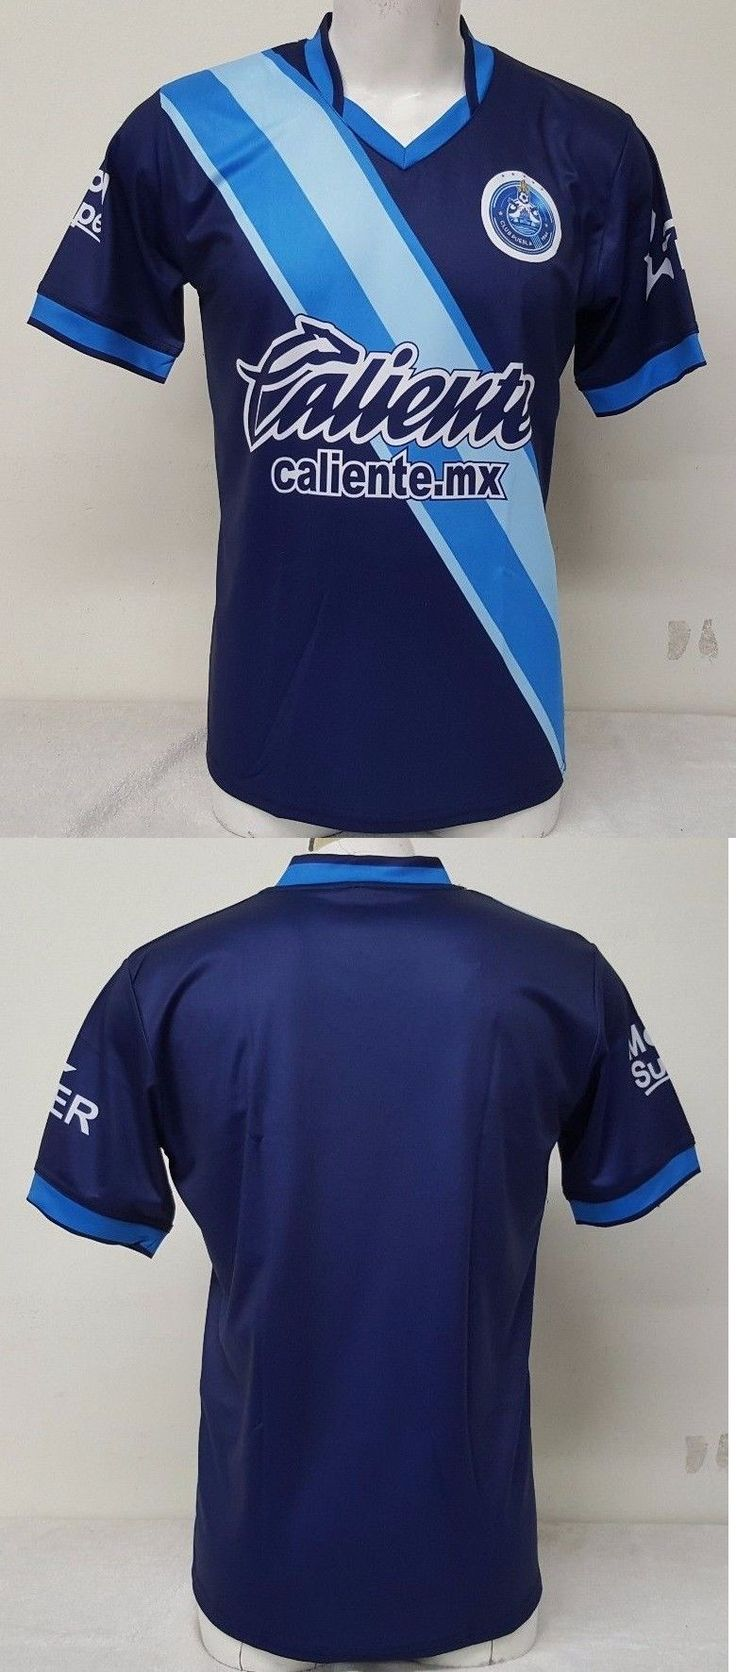 Soccer-International Clubs 2887: Puebla Fc Men S Away Soccer Jersey Made In Mexico -> BUY IT NOW ONLY: $30.39 on eBay!